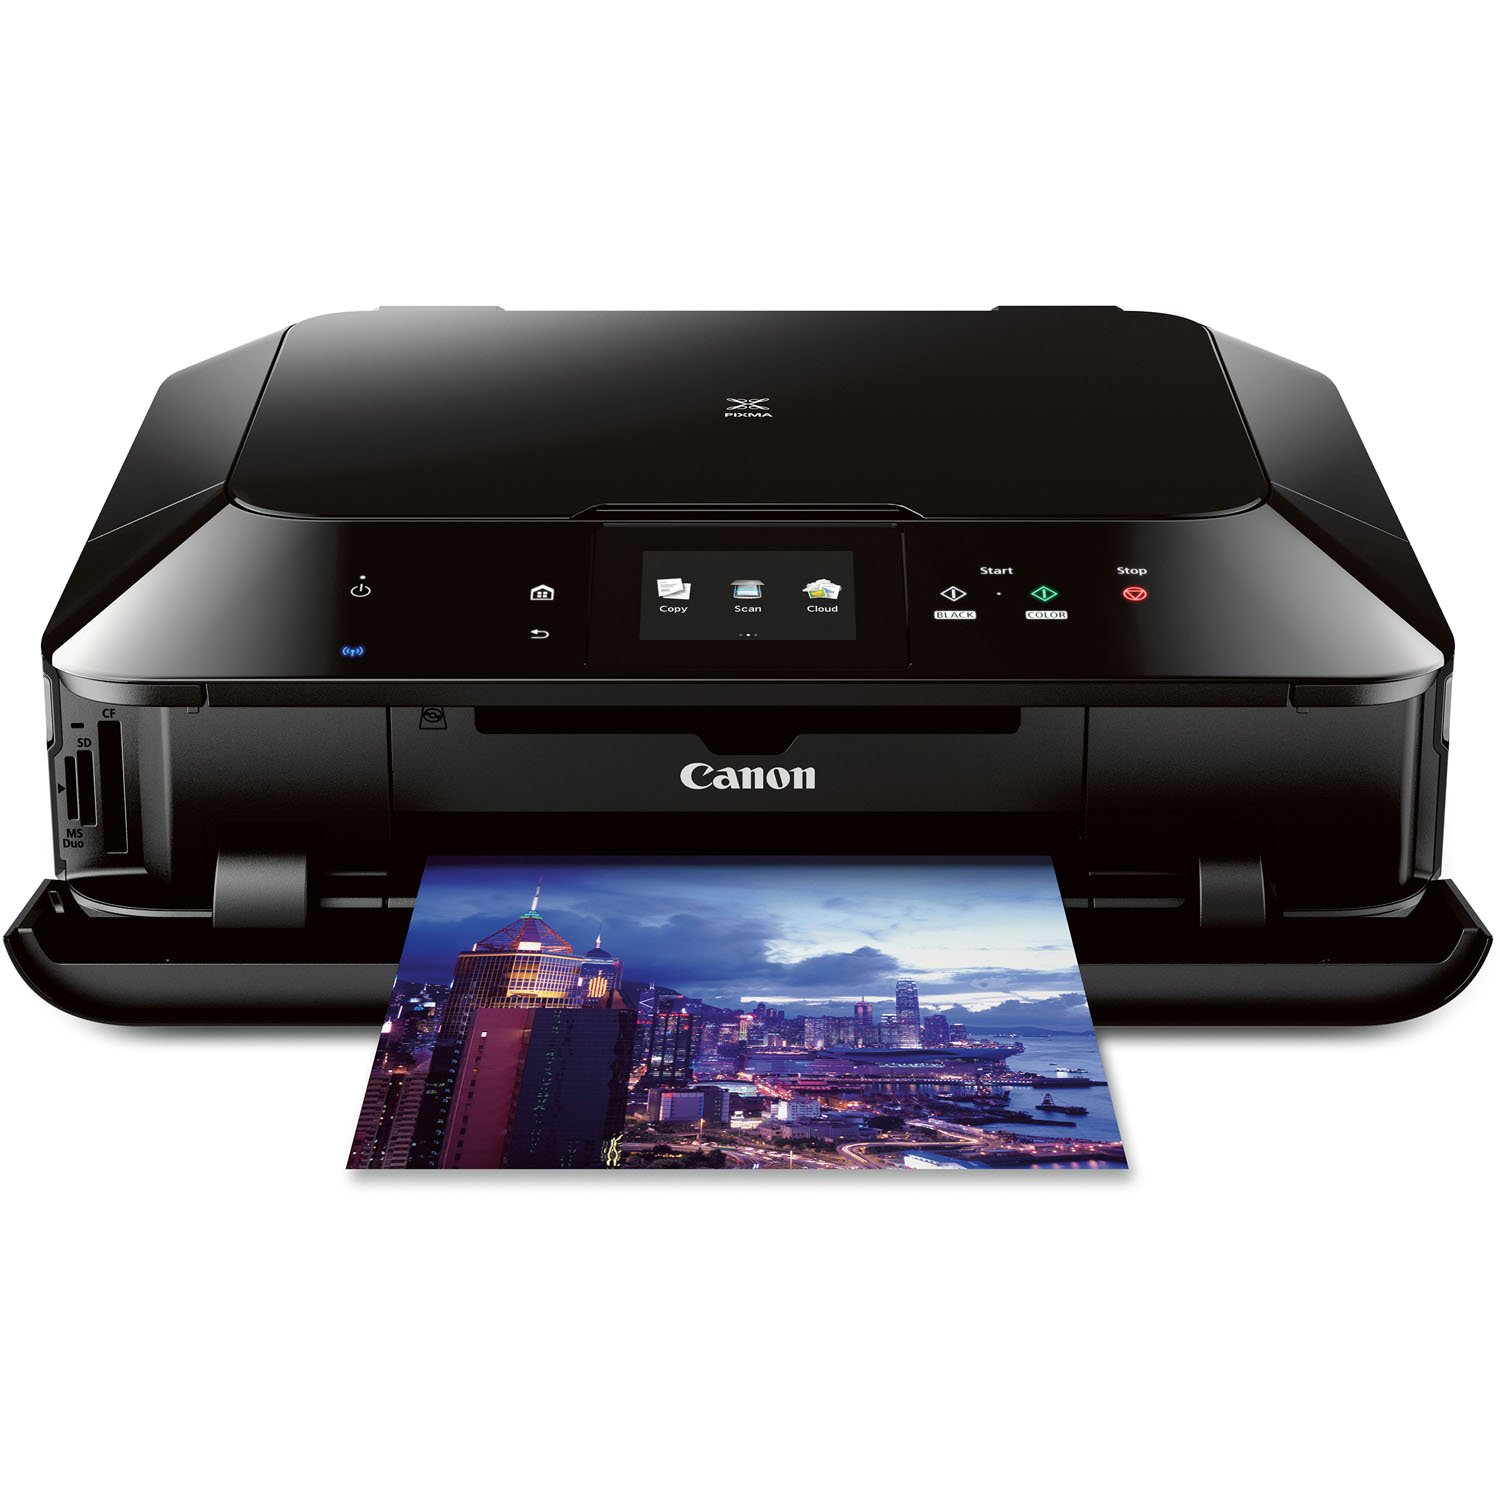 Amazon.com: Canon PIXMA MG7120 Wireless Color Photo All-In-One Printer,  Black (Discontinued by Manufacturer): Electronics